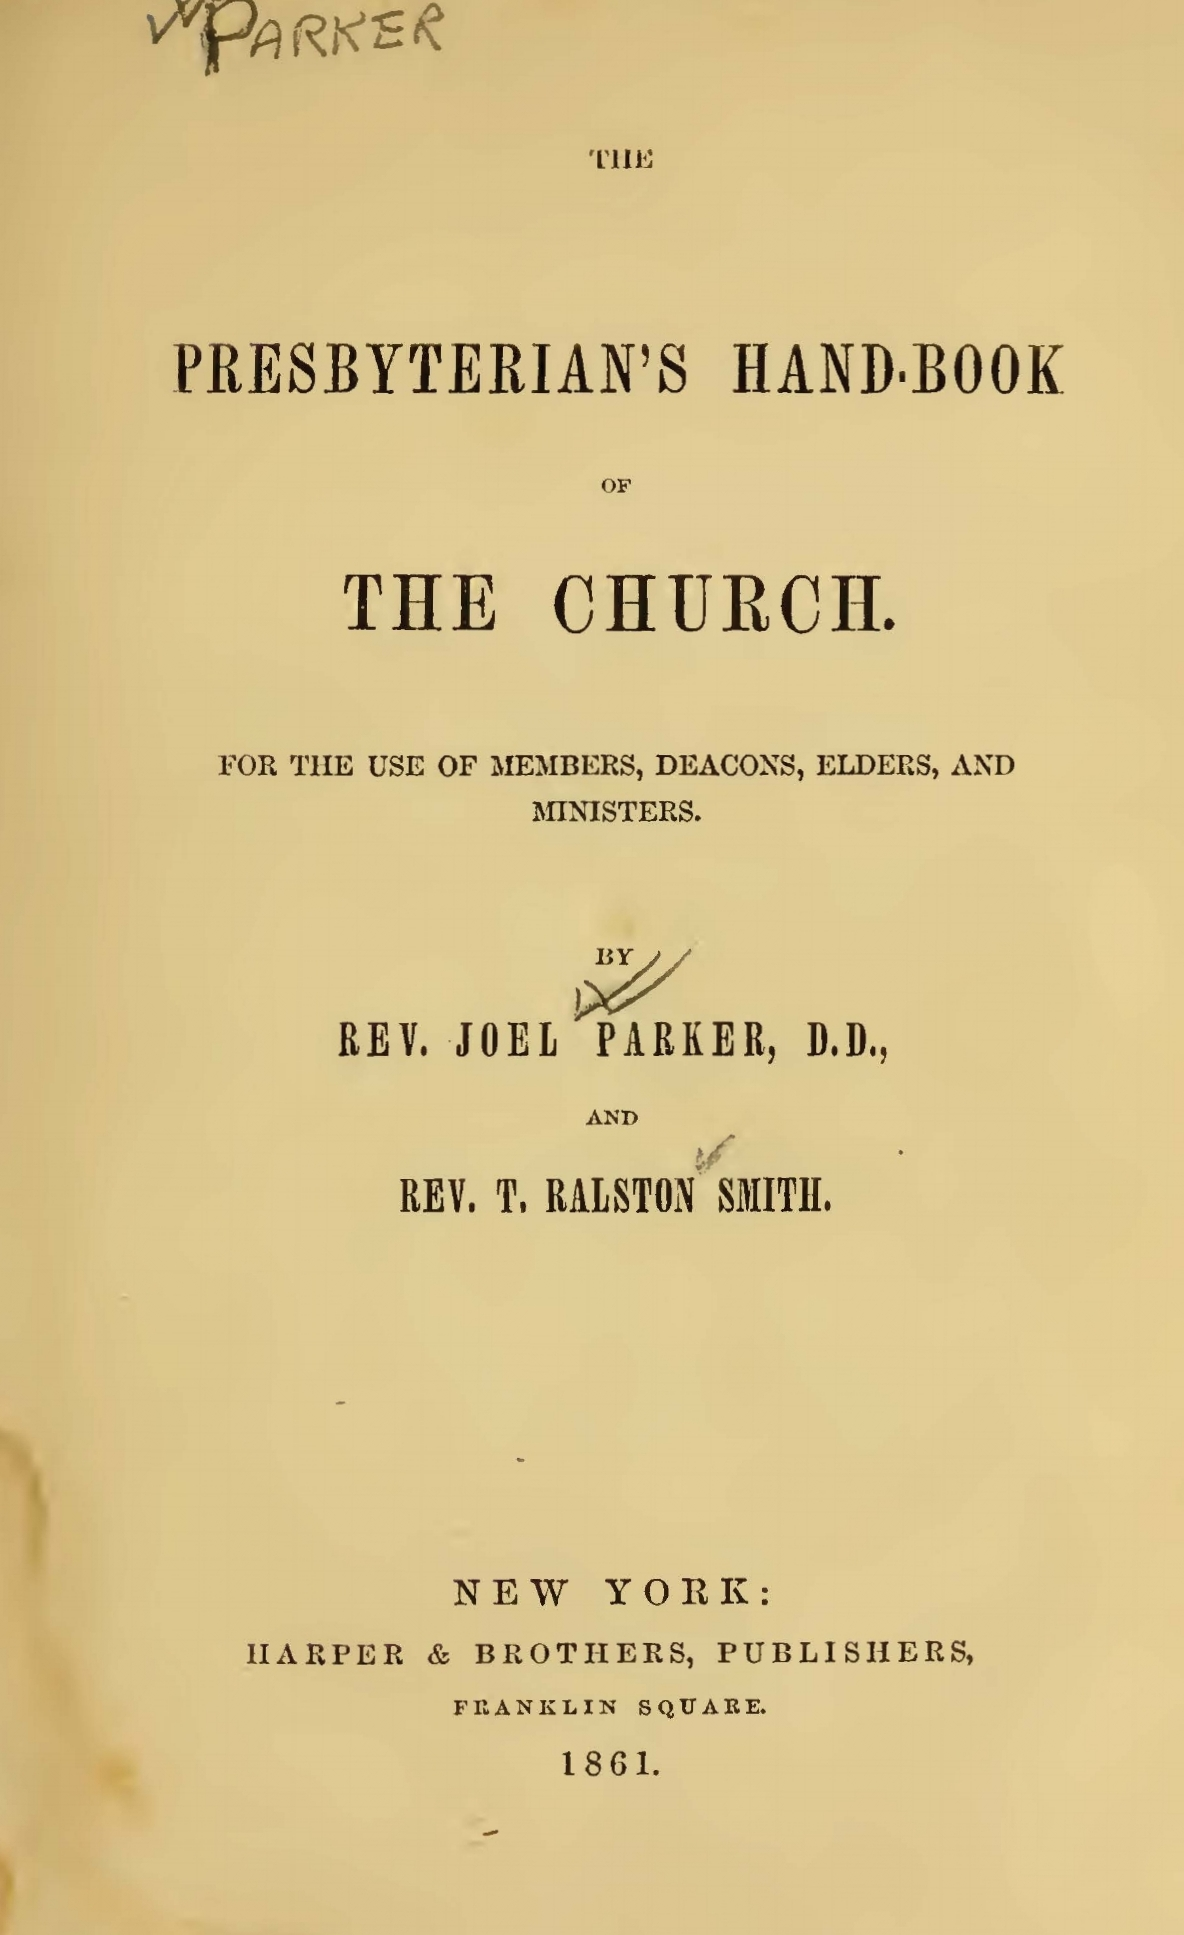 Smith, Thomas Ralston, The Presbyterian's Hand-Book of the Church Title Page.jpg